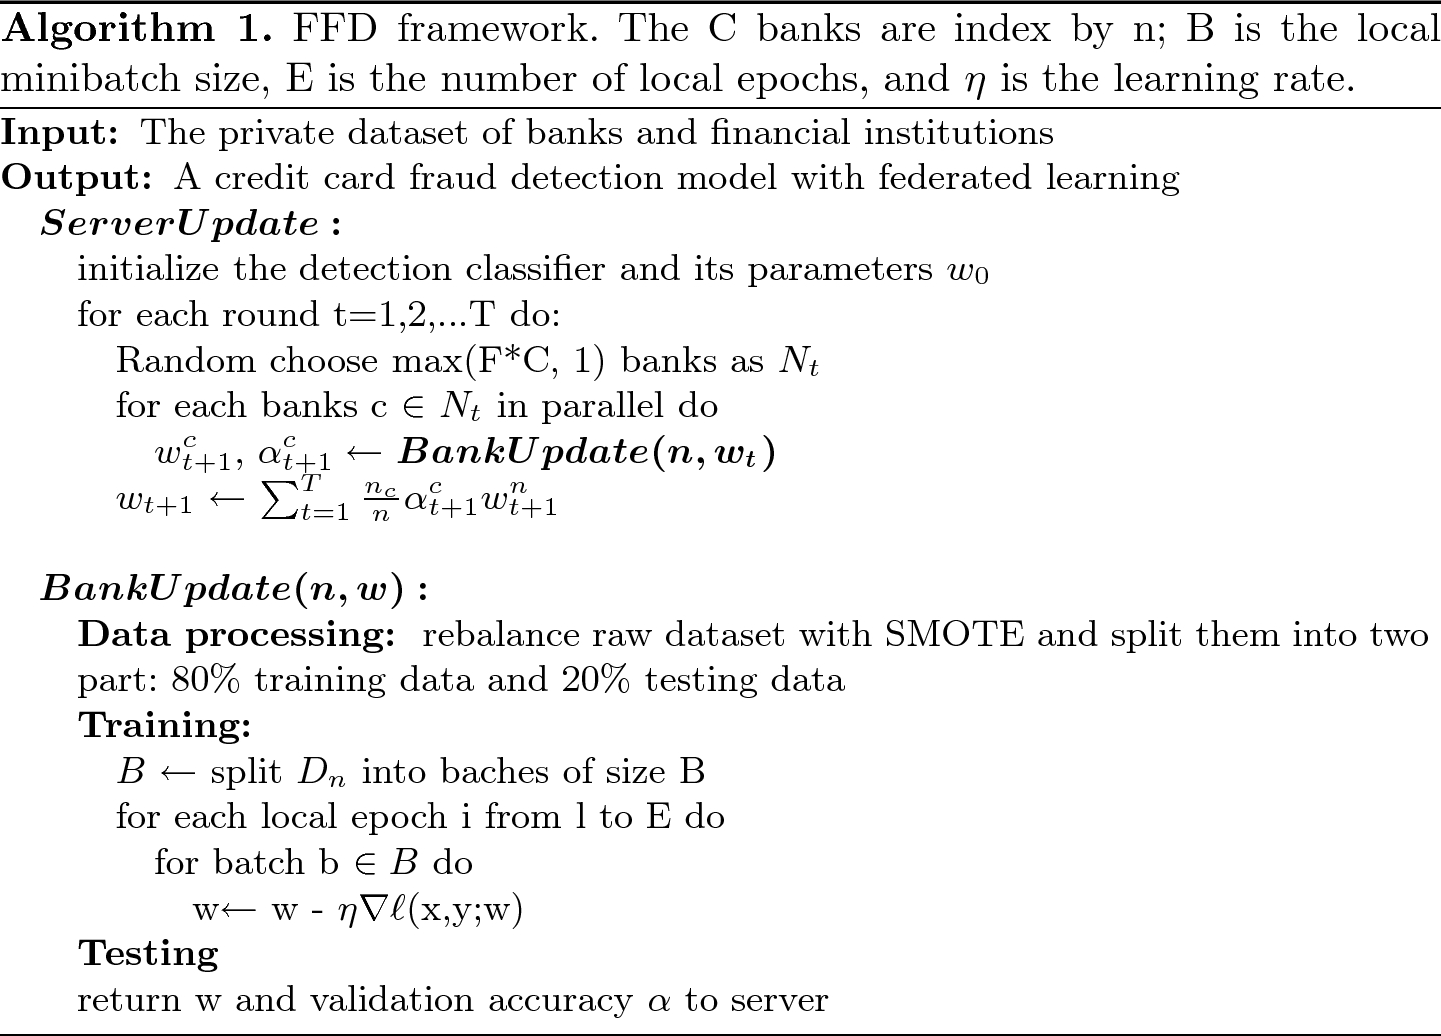 FFD: A Federated Learning Based Method for Credit Card Fraud